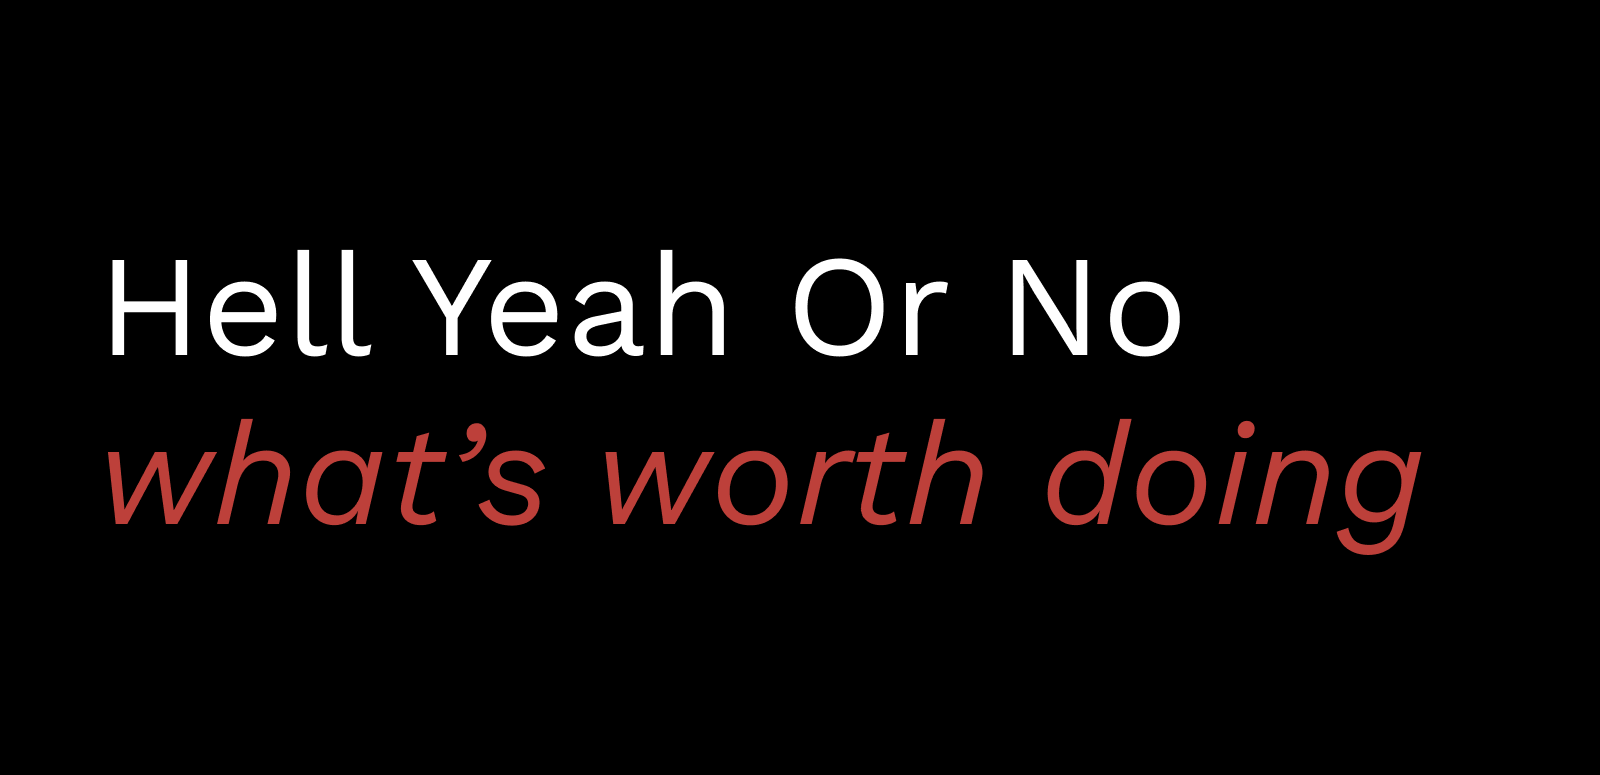 Hell Year Or No: what's worth doing